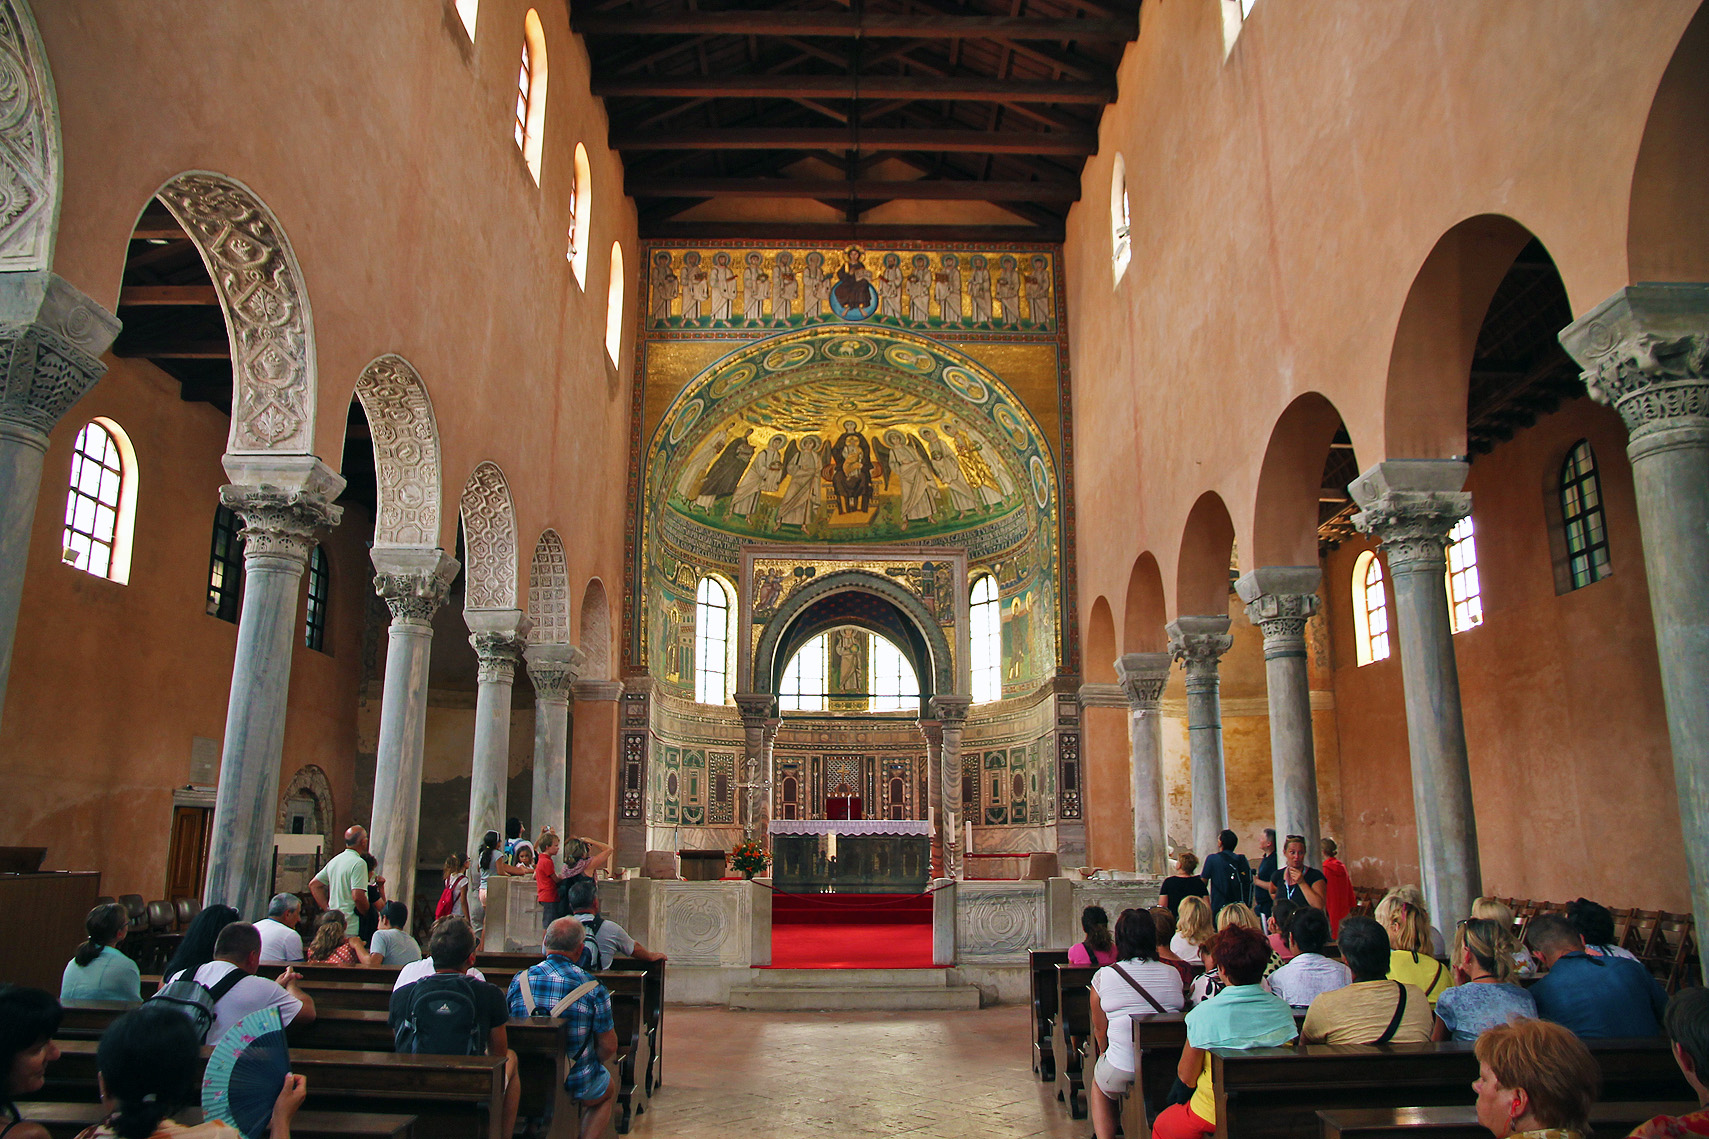 The magnificent interior of the Euphrasian Basilica.